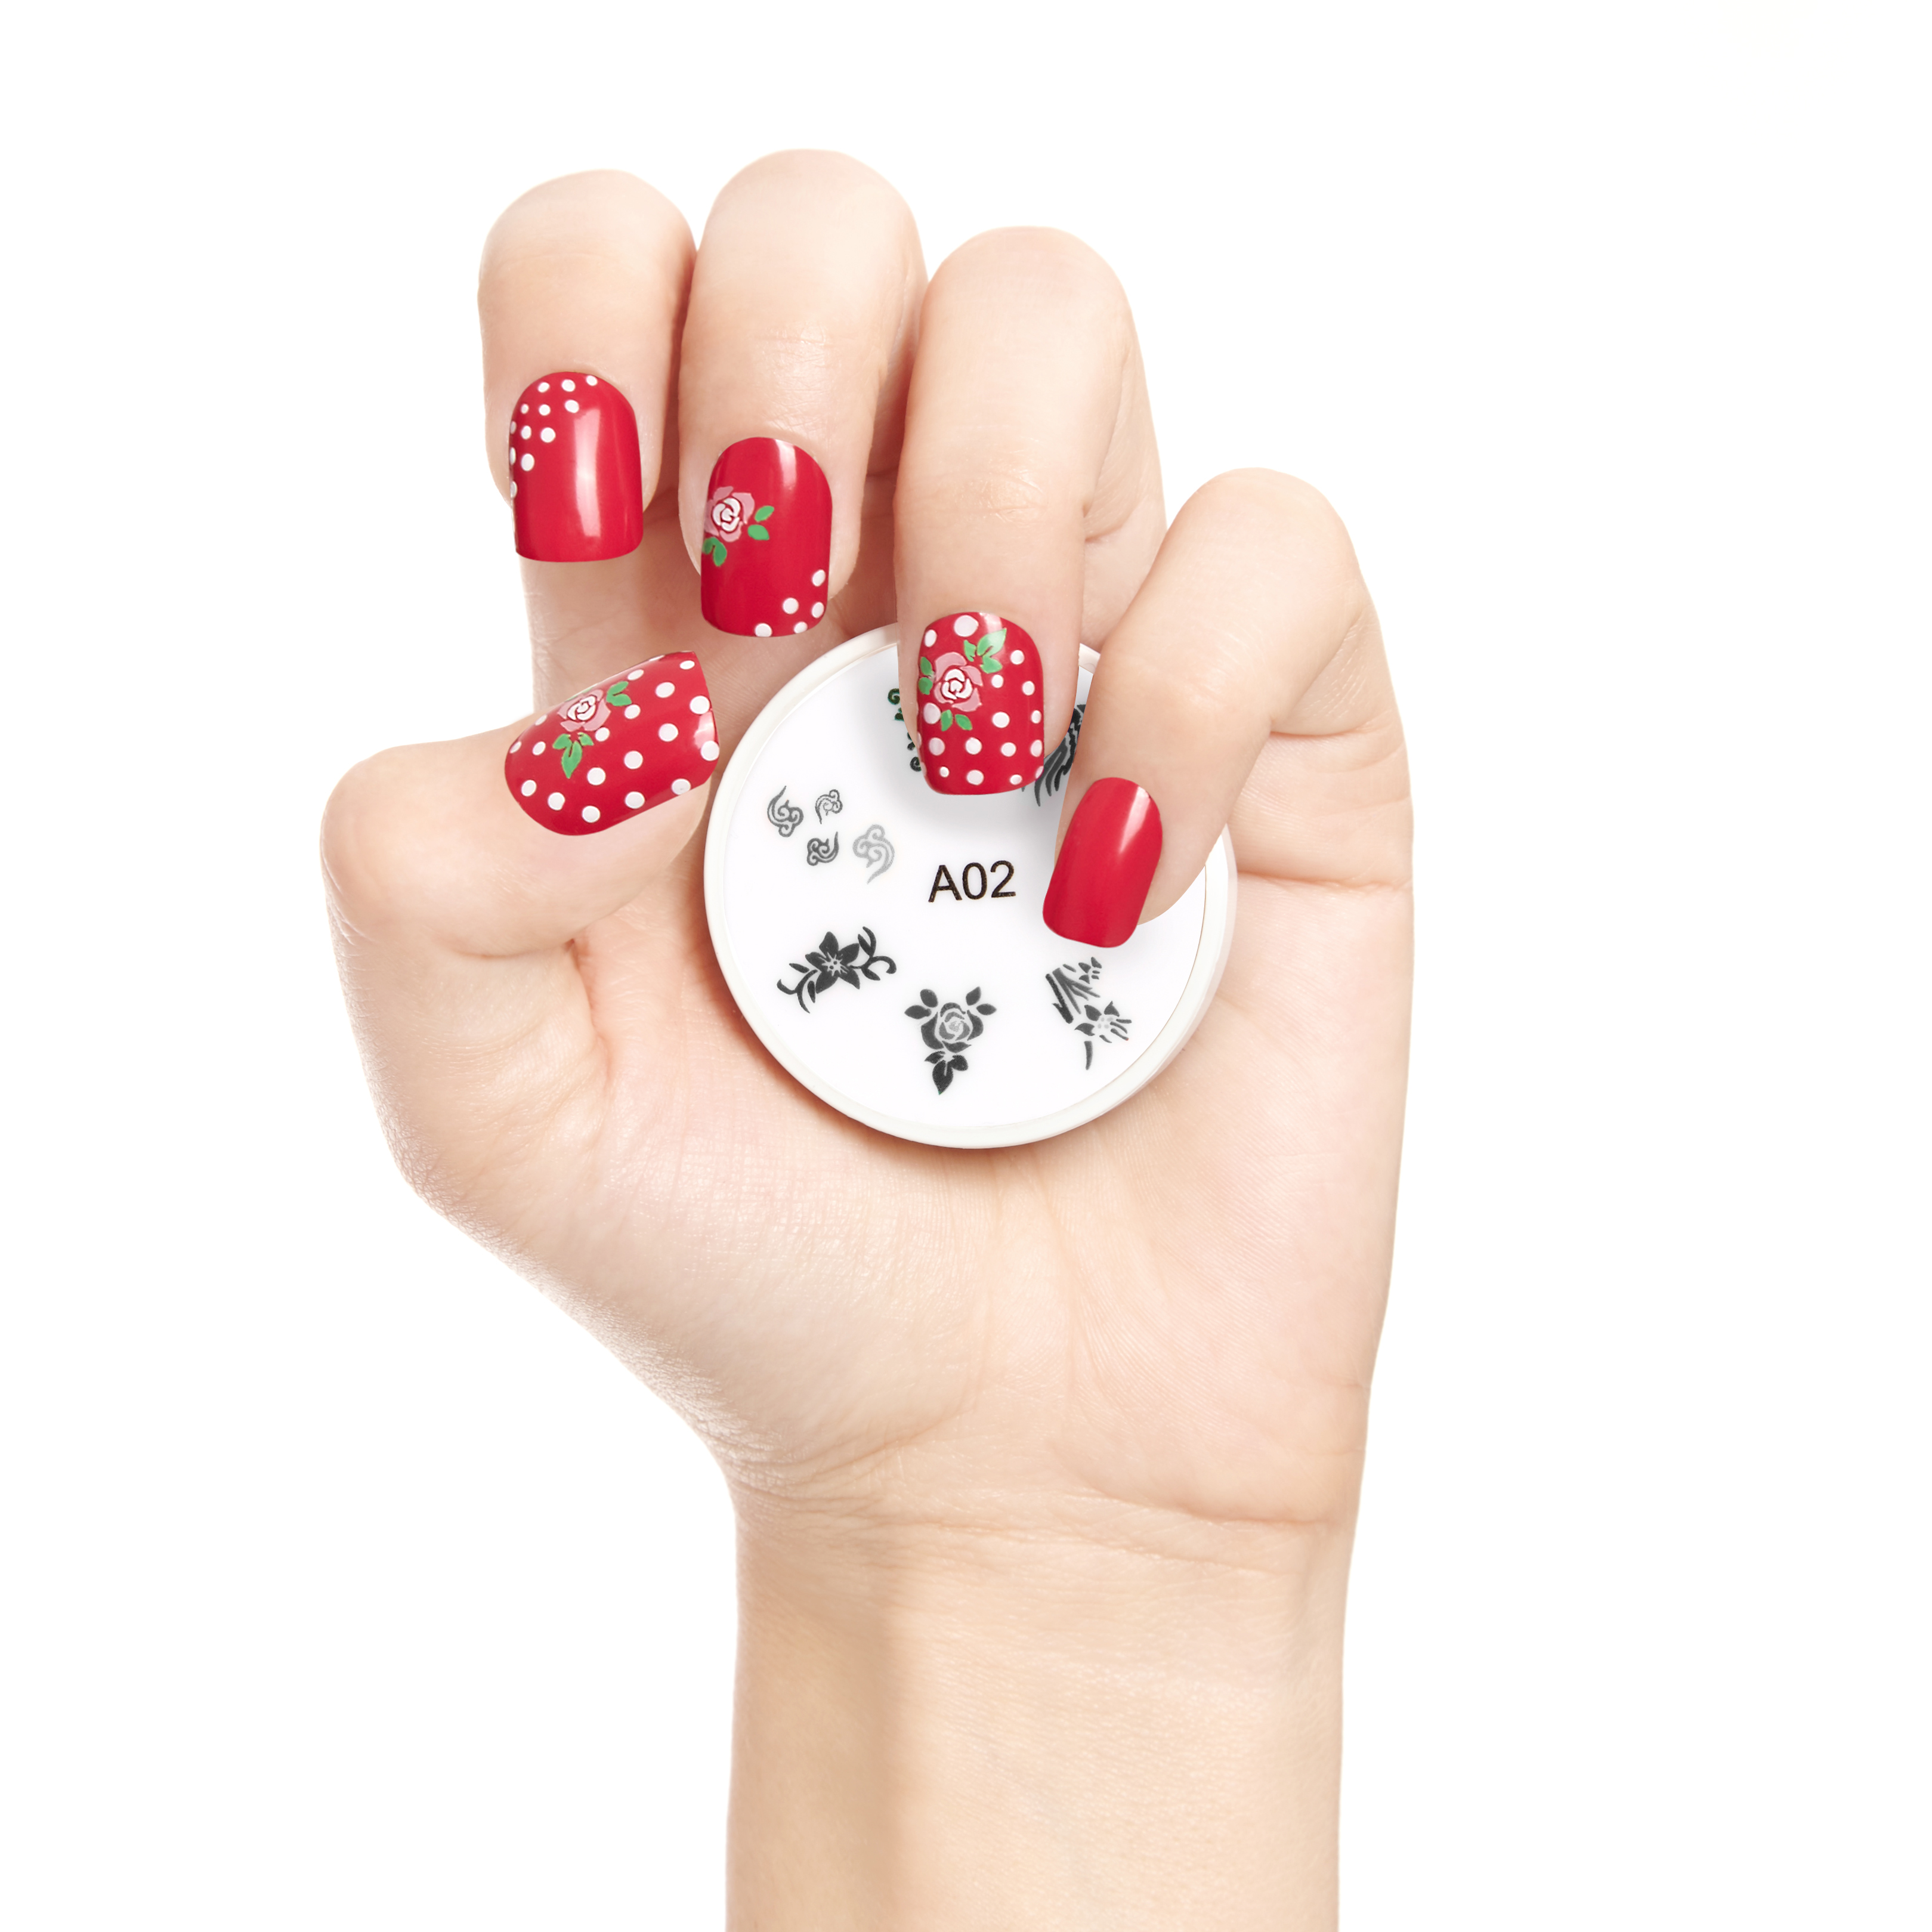 Apharsec nail stamp complete all in one a range manicure nail apharsec nail stamp complete all in one 039 prinsesfo Choice Image